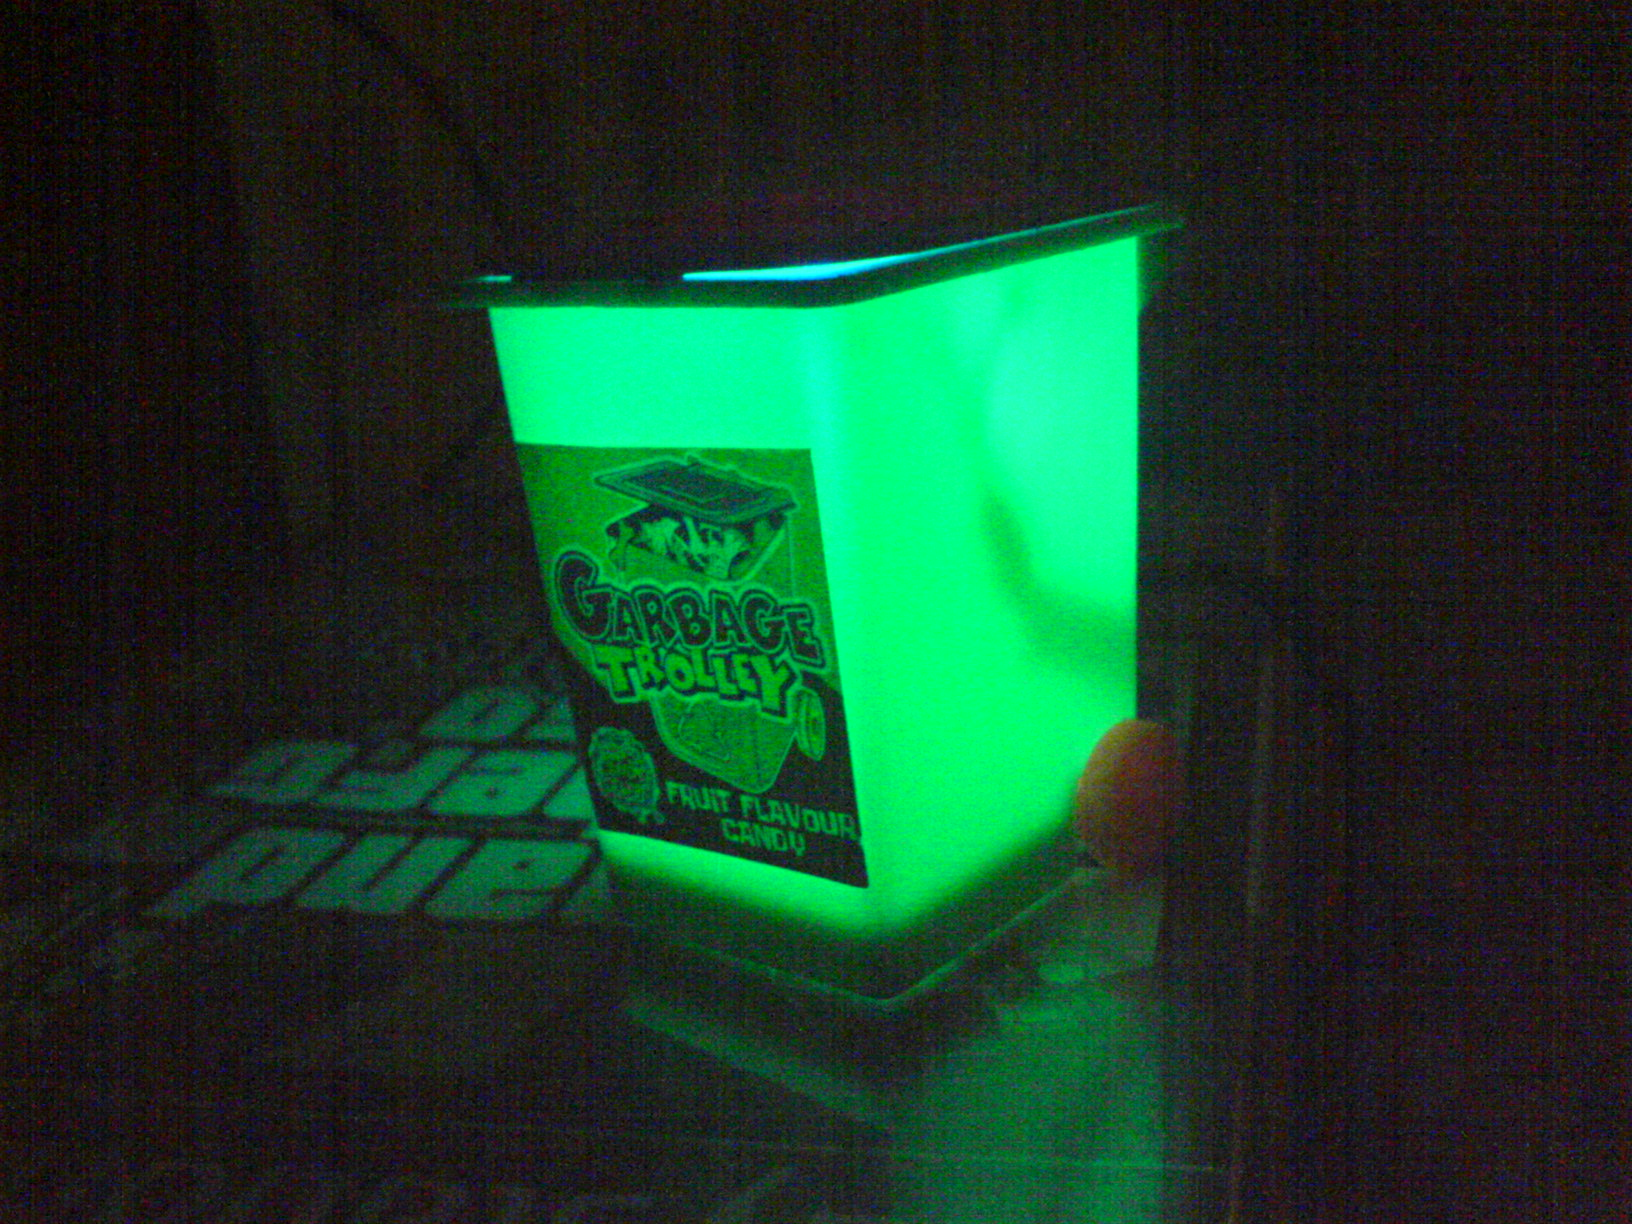 Trash can (or other sweet box) usb light